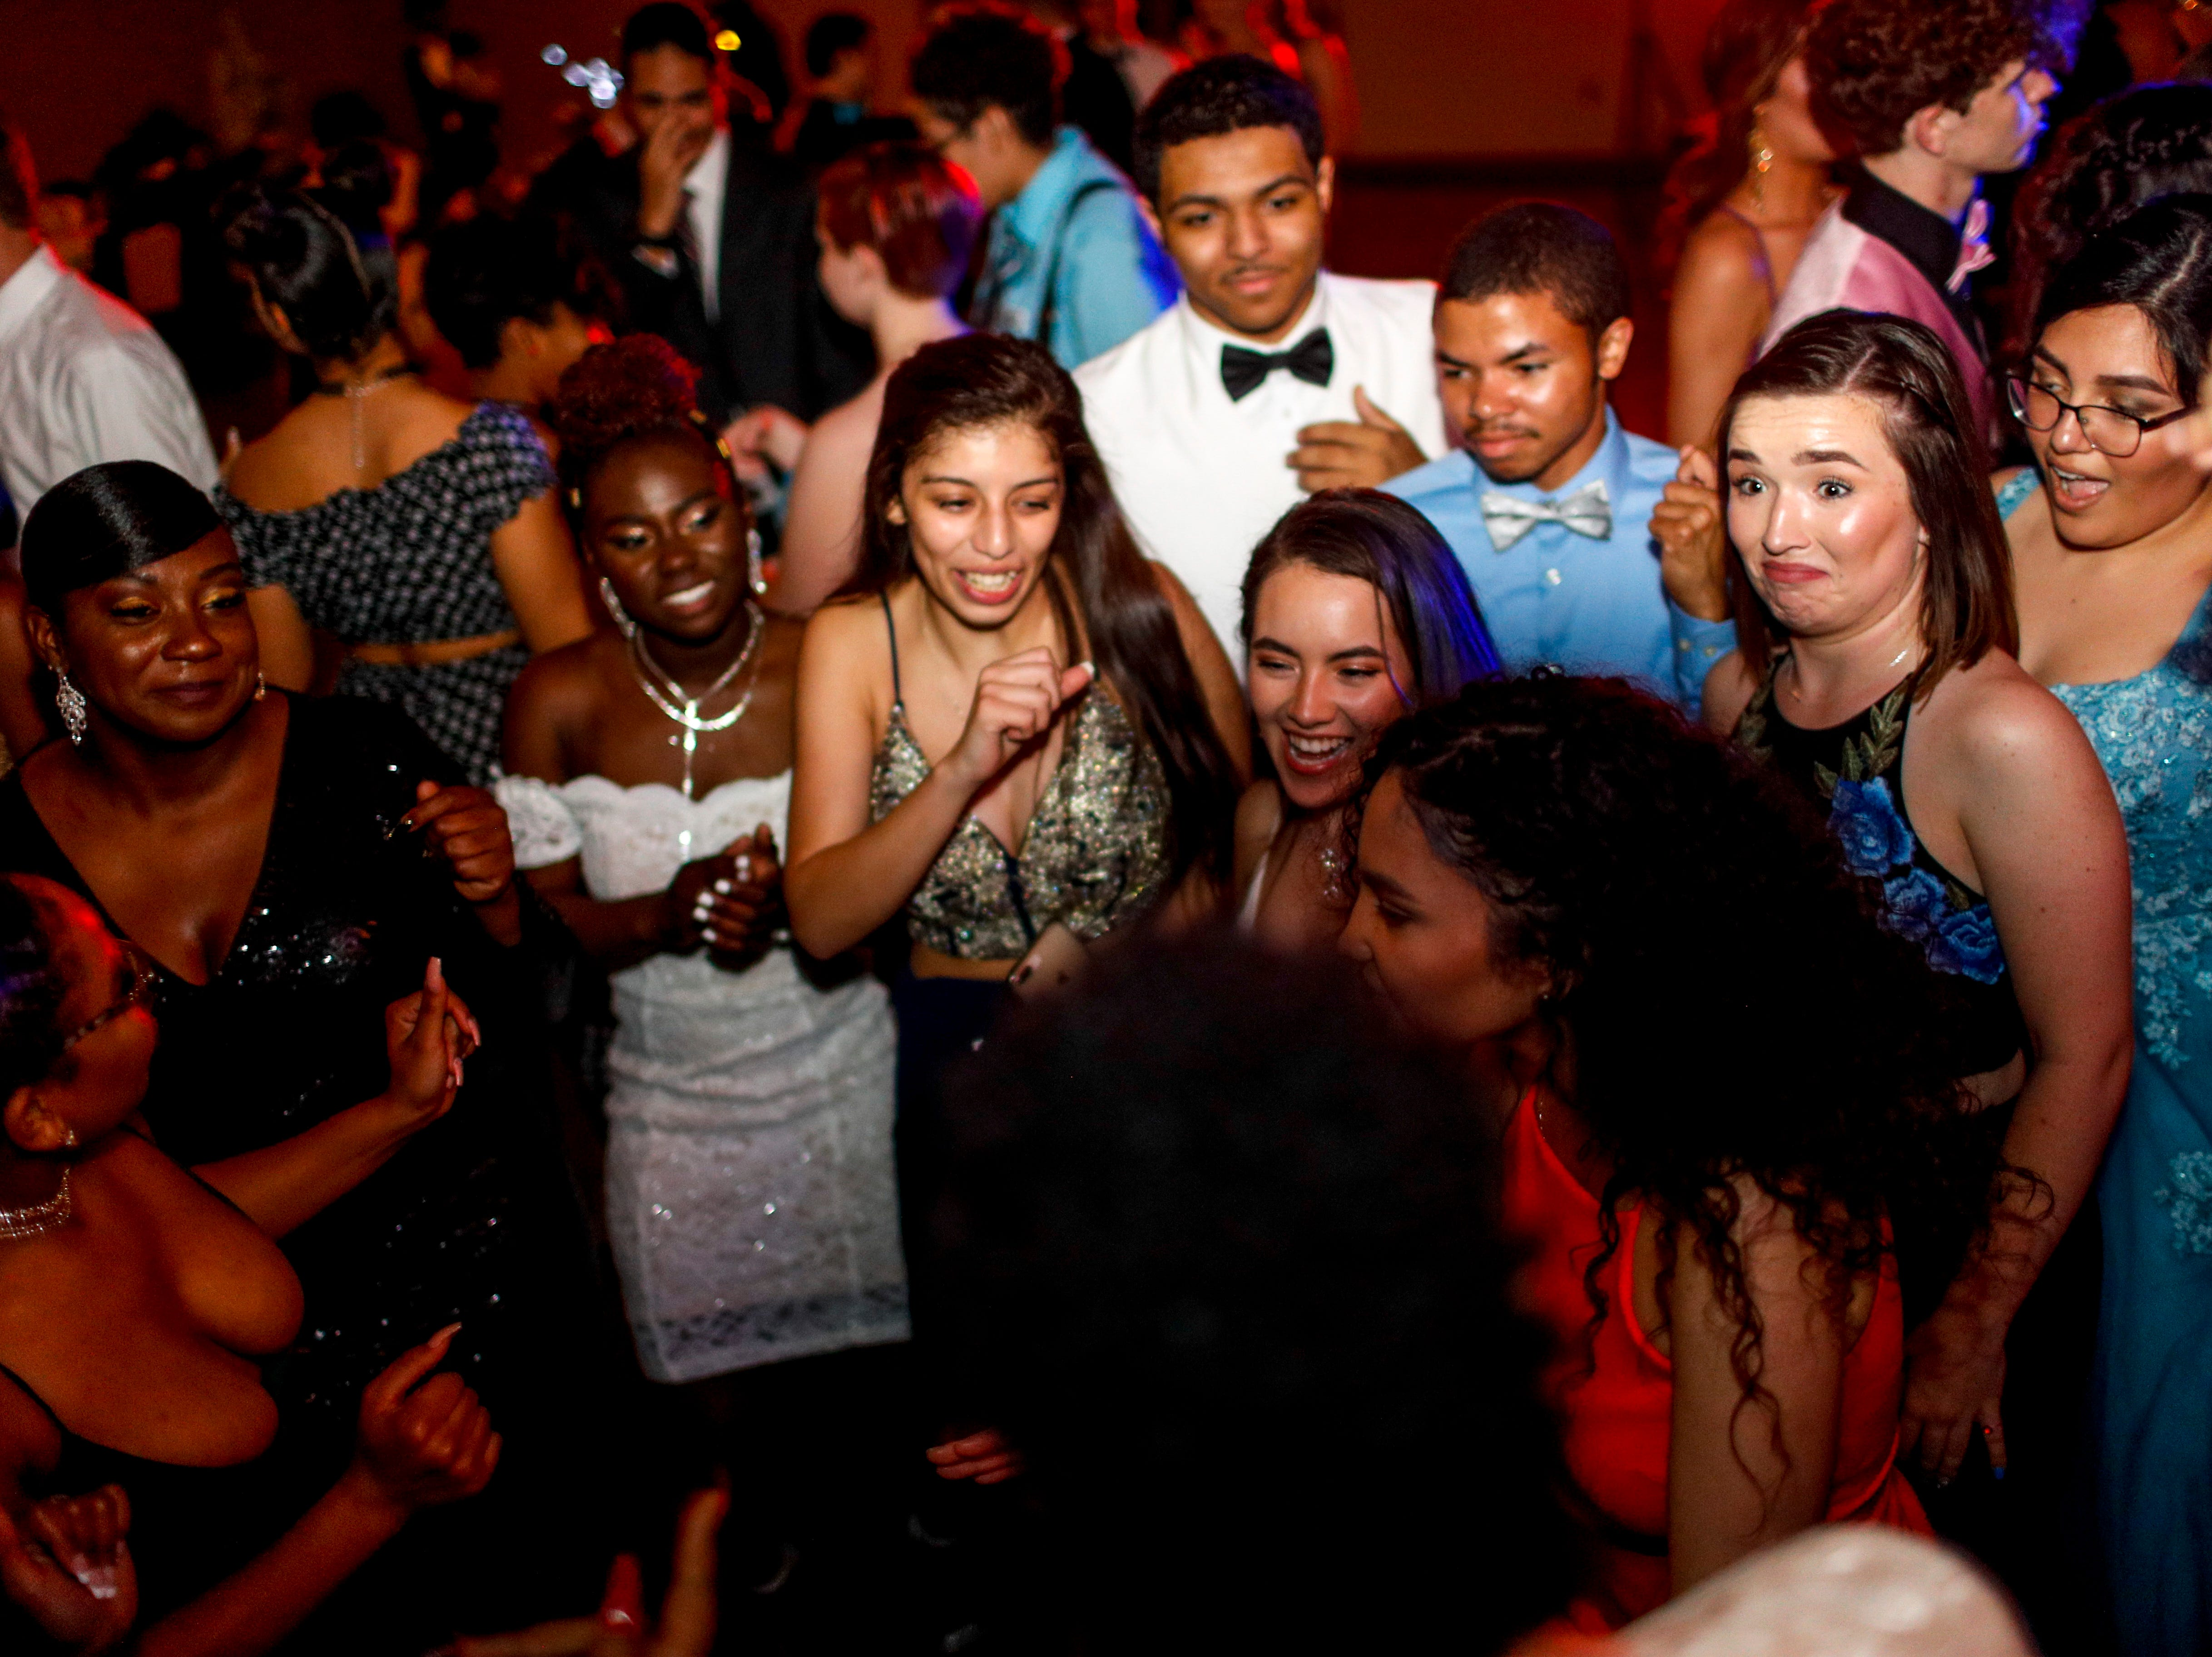 """Nearly 180 students celebrated the night away at Fort Campbell High School's 2019 prom themed """"A Night in Athens"""" at Valor Hall in Oak Grove, KY., on Saturday, April 20, 2019."""